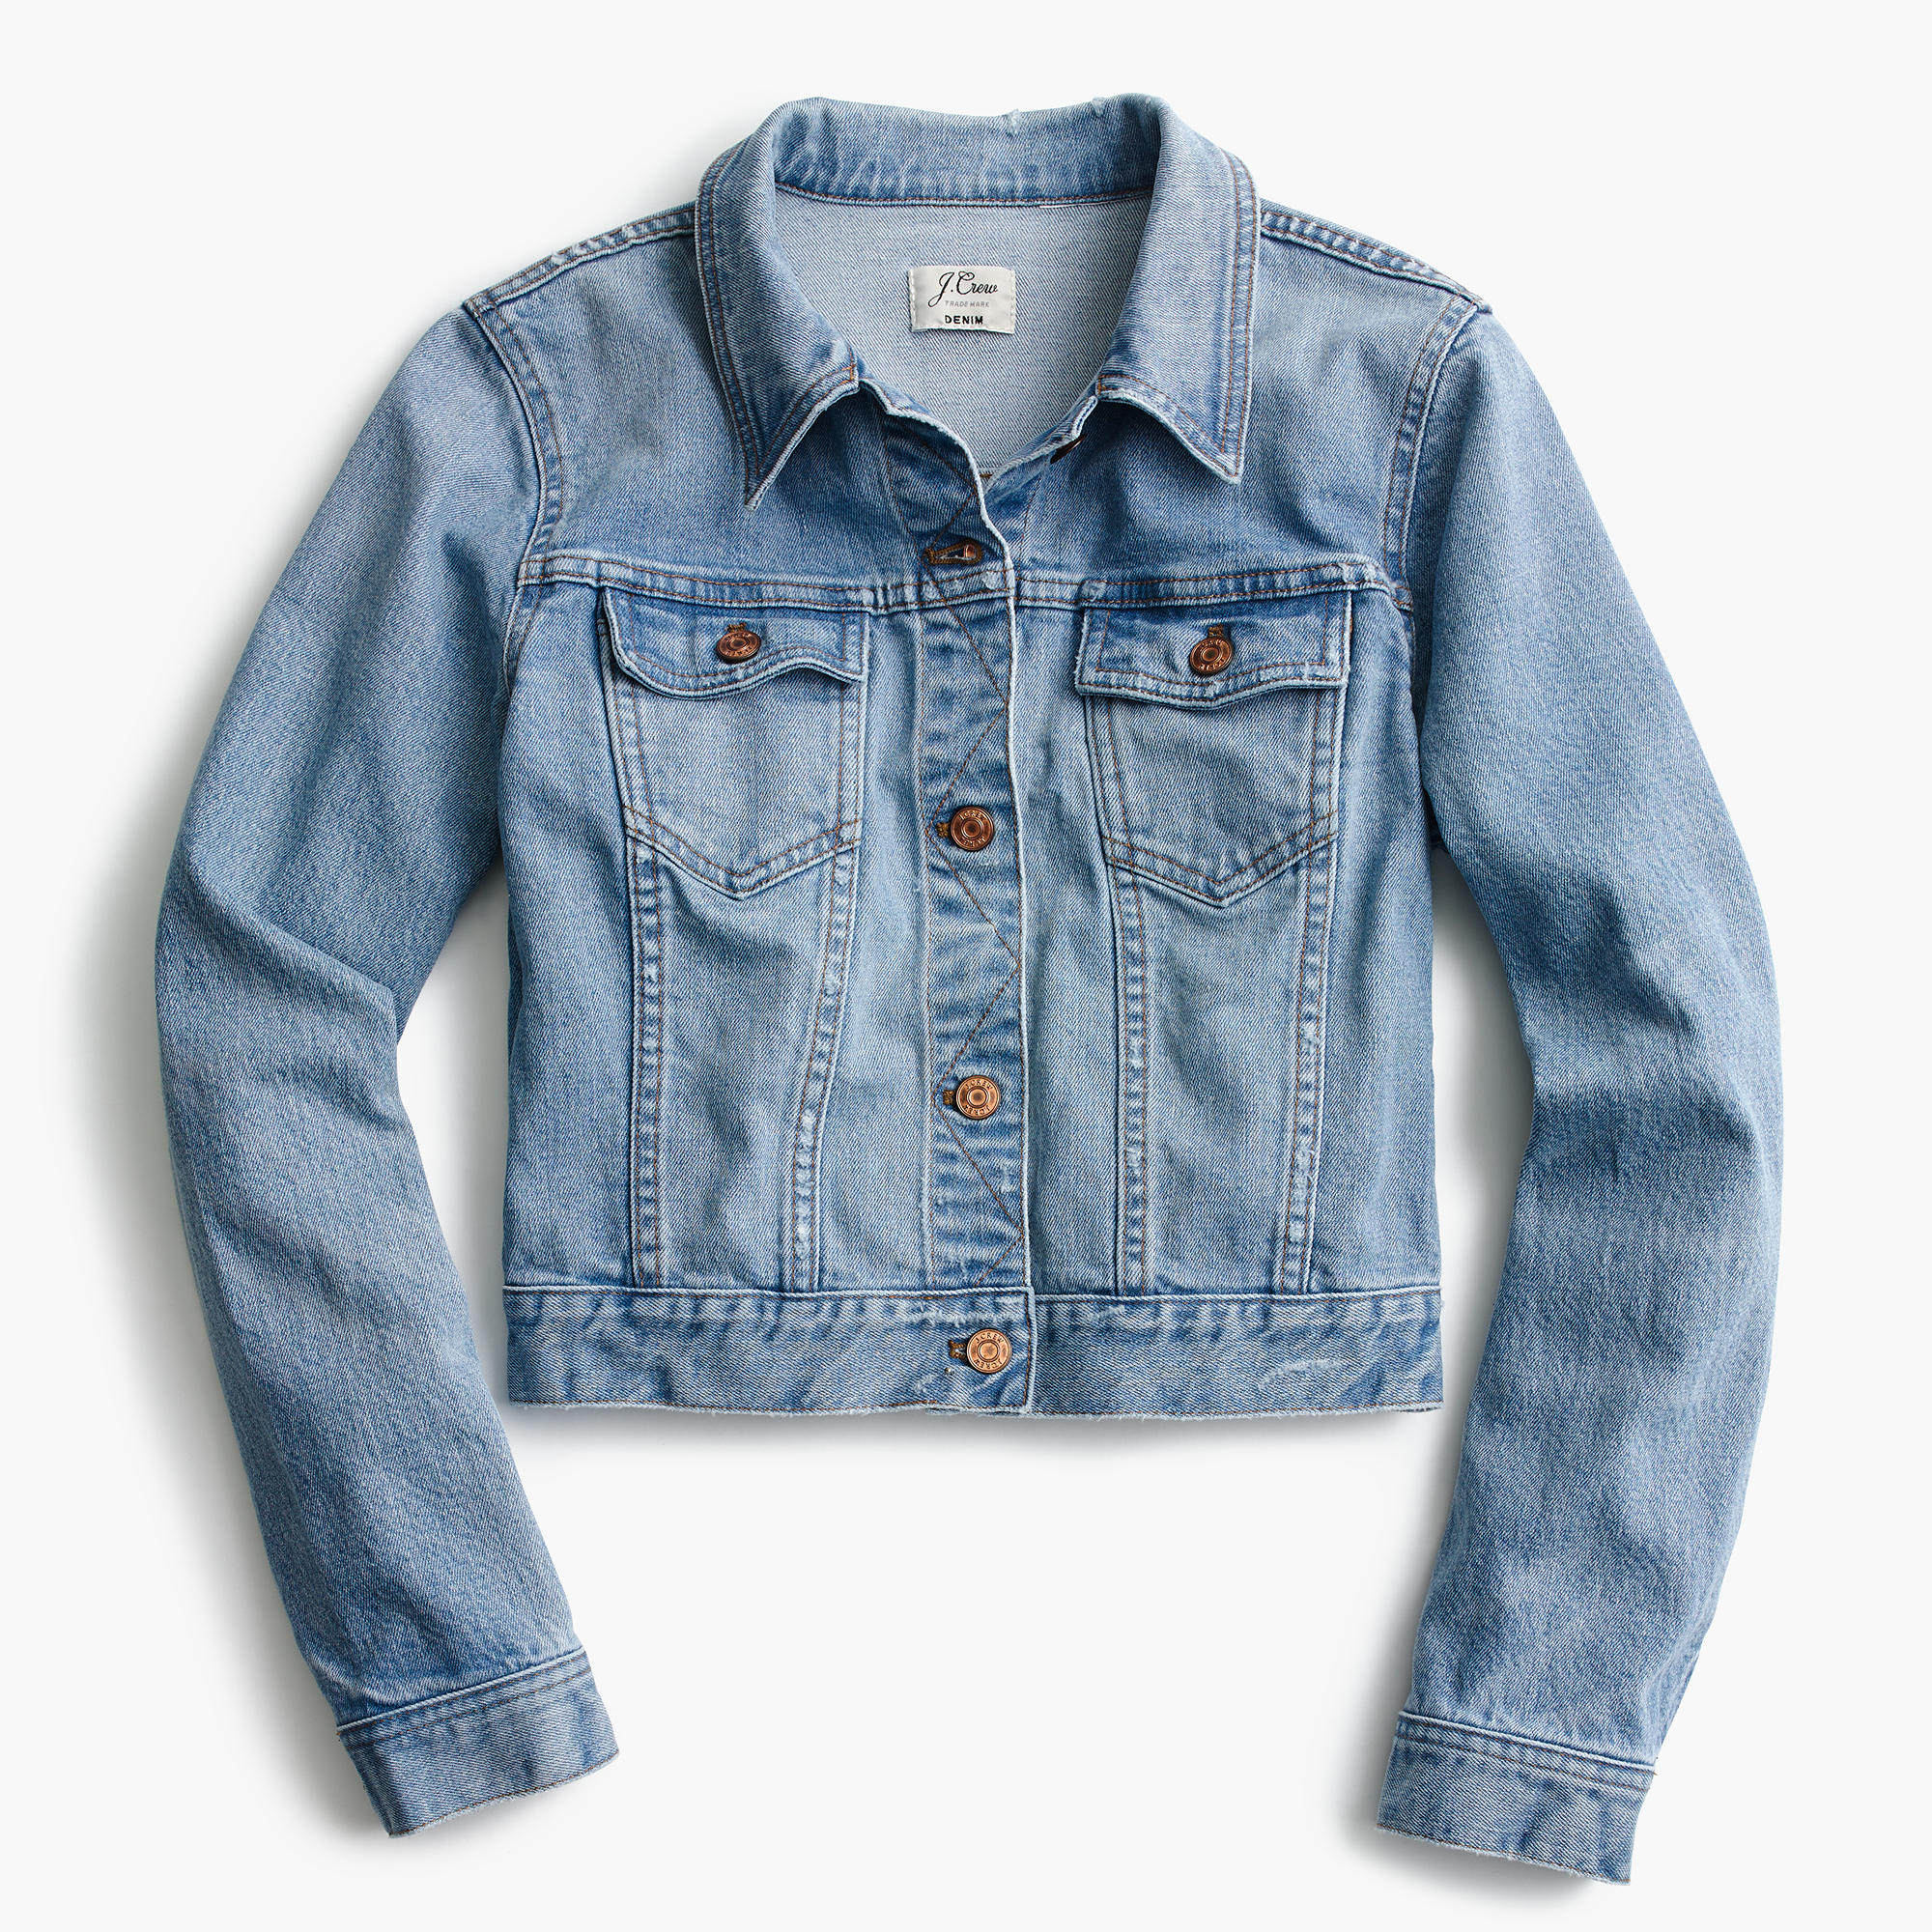 May 05,  · Wash denim every 2 to 6 months, depending on your level of wear, the type of jeans you own, and personal preferences. The wash schedule of denim depends on their use. Jeans used to work outside will be cared for differently than designer jeans worn for a night out%(33).